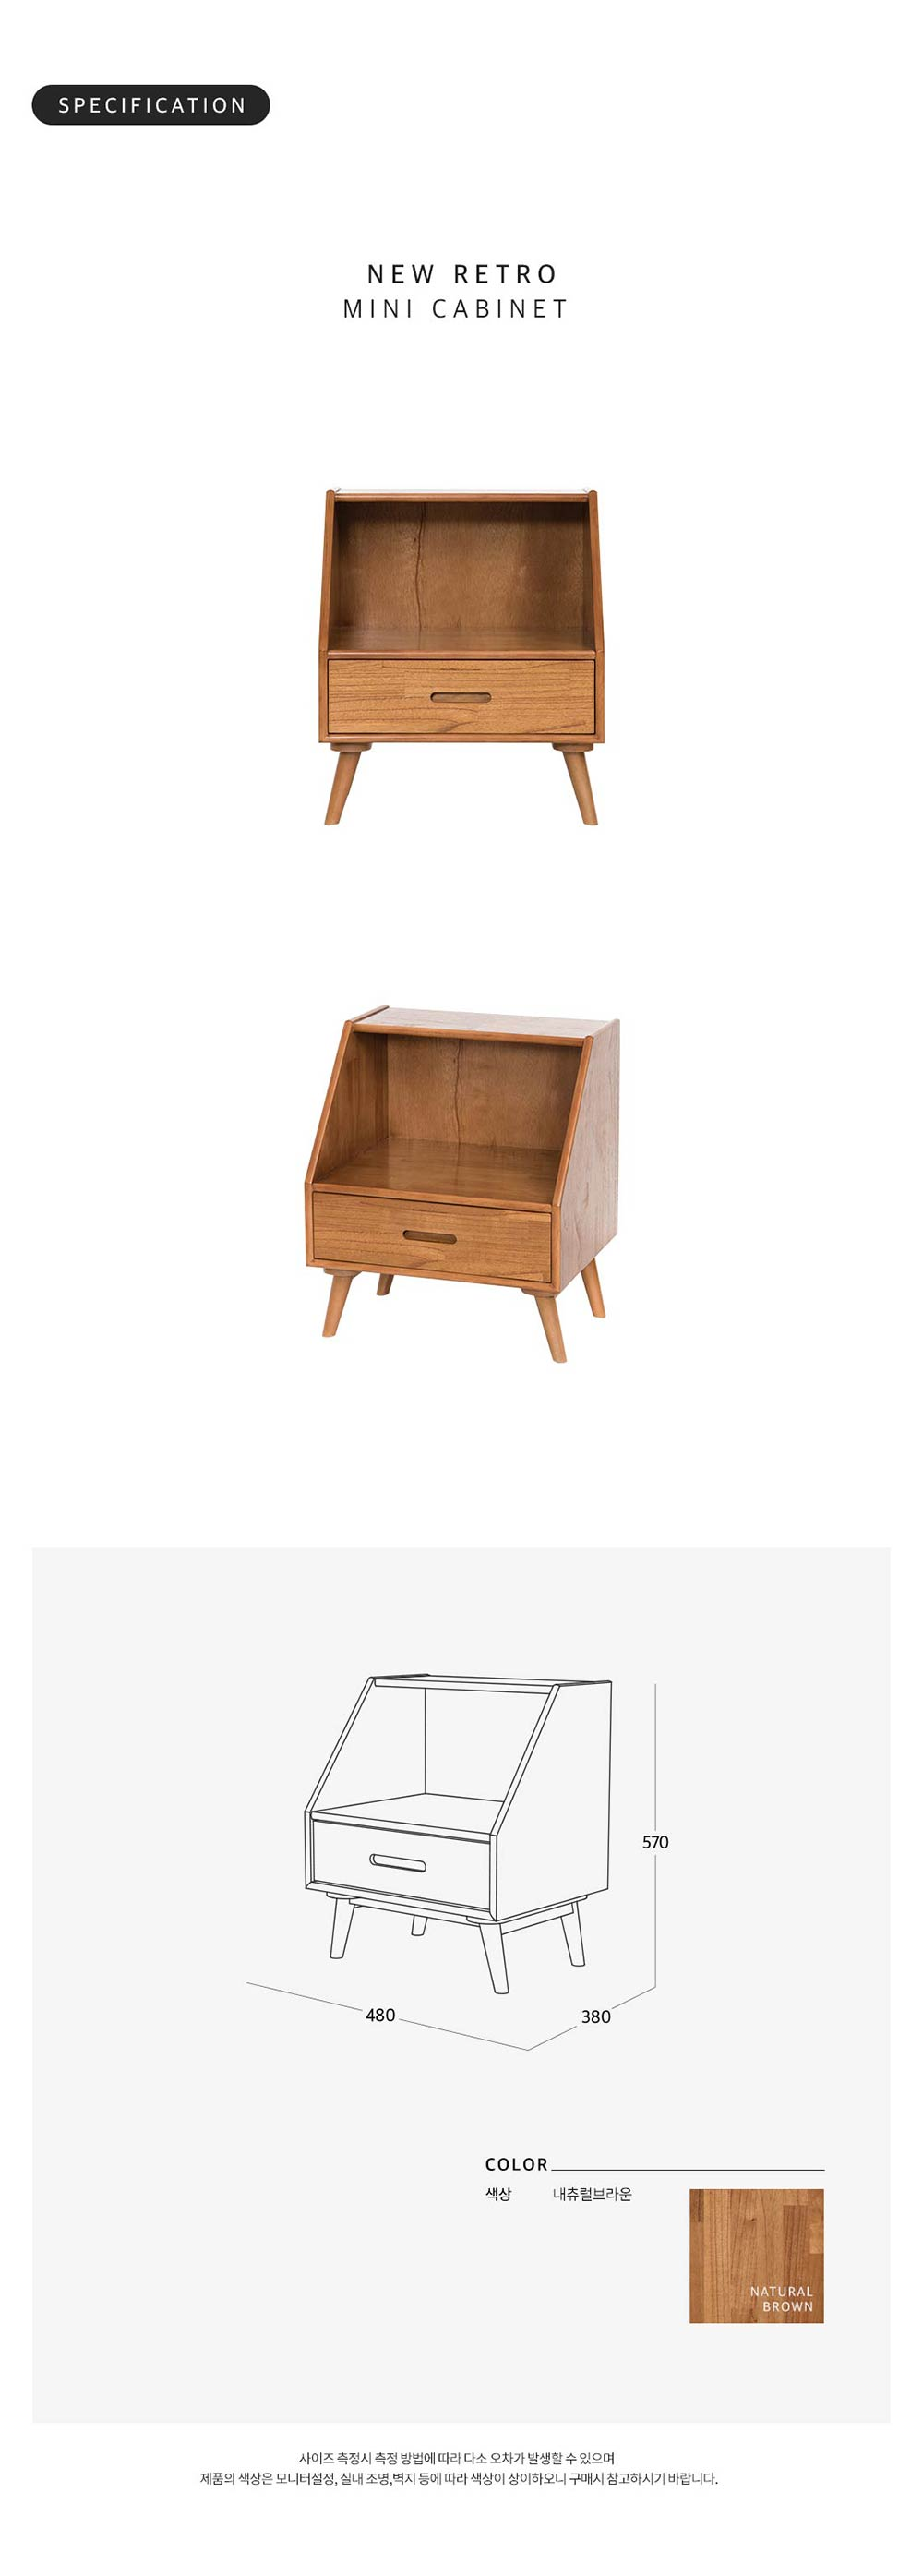 New_Retro_Mini_Cabinet_Furniture_Online_Singapore_Specification_by_born_in_colour